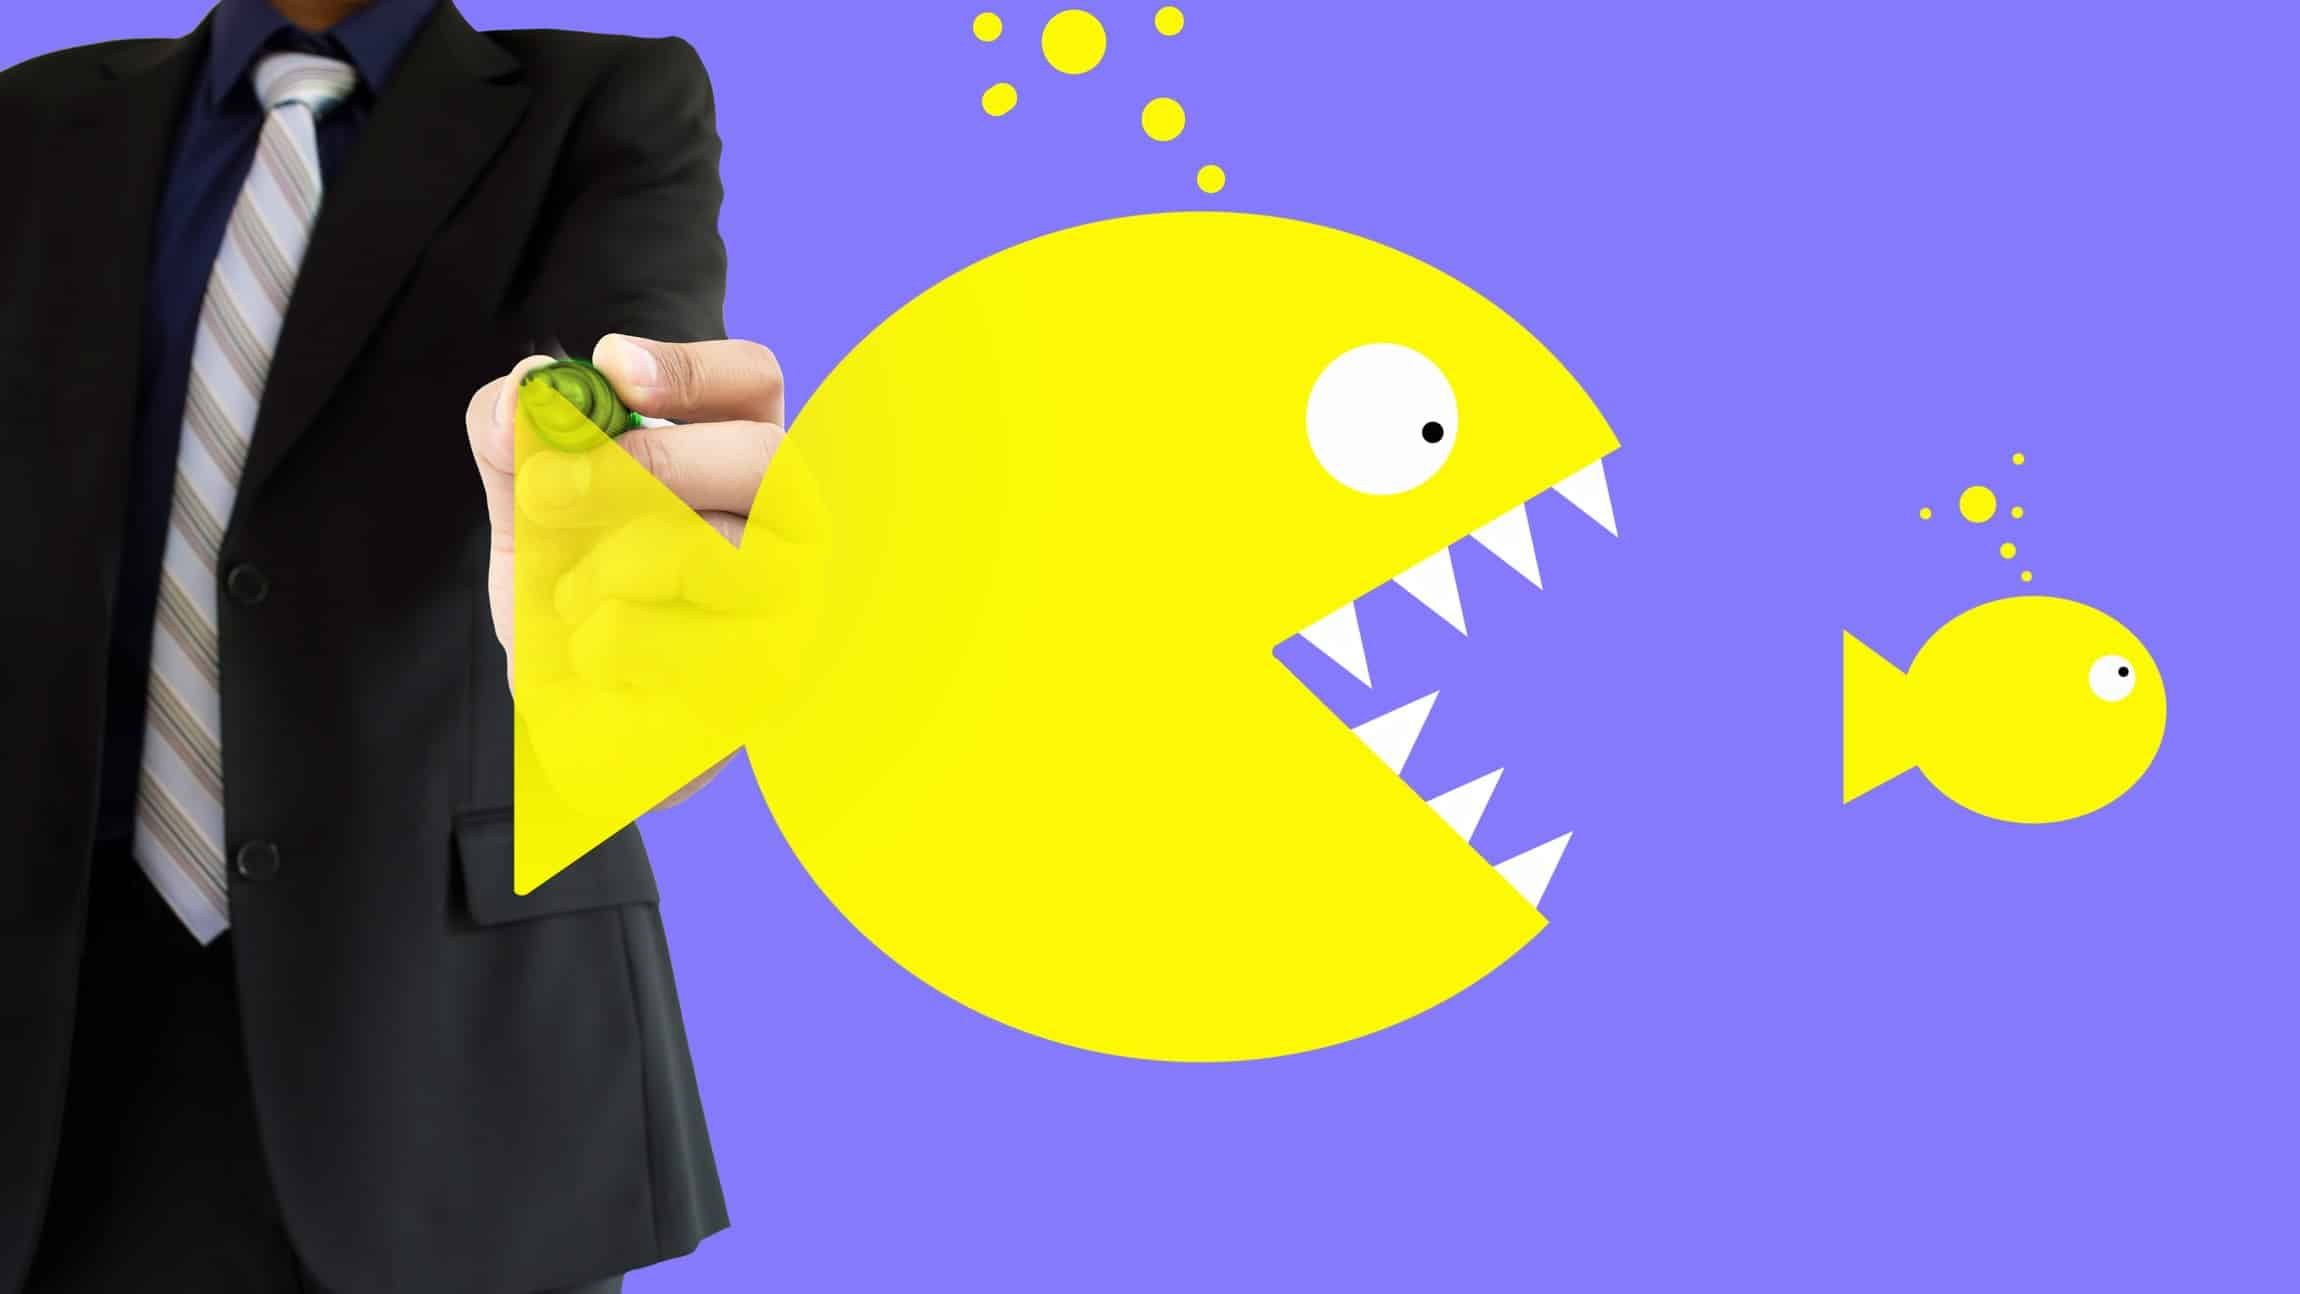 asx 200 share takeover represented by man drawing illustration of big fish eating little fish